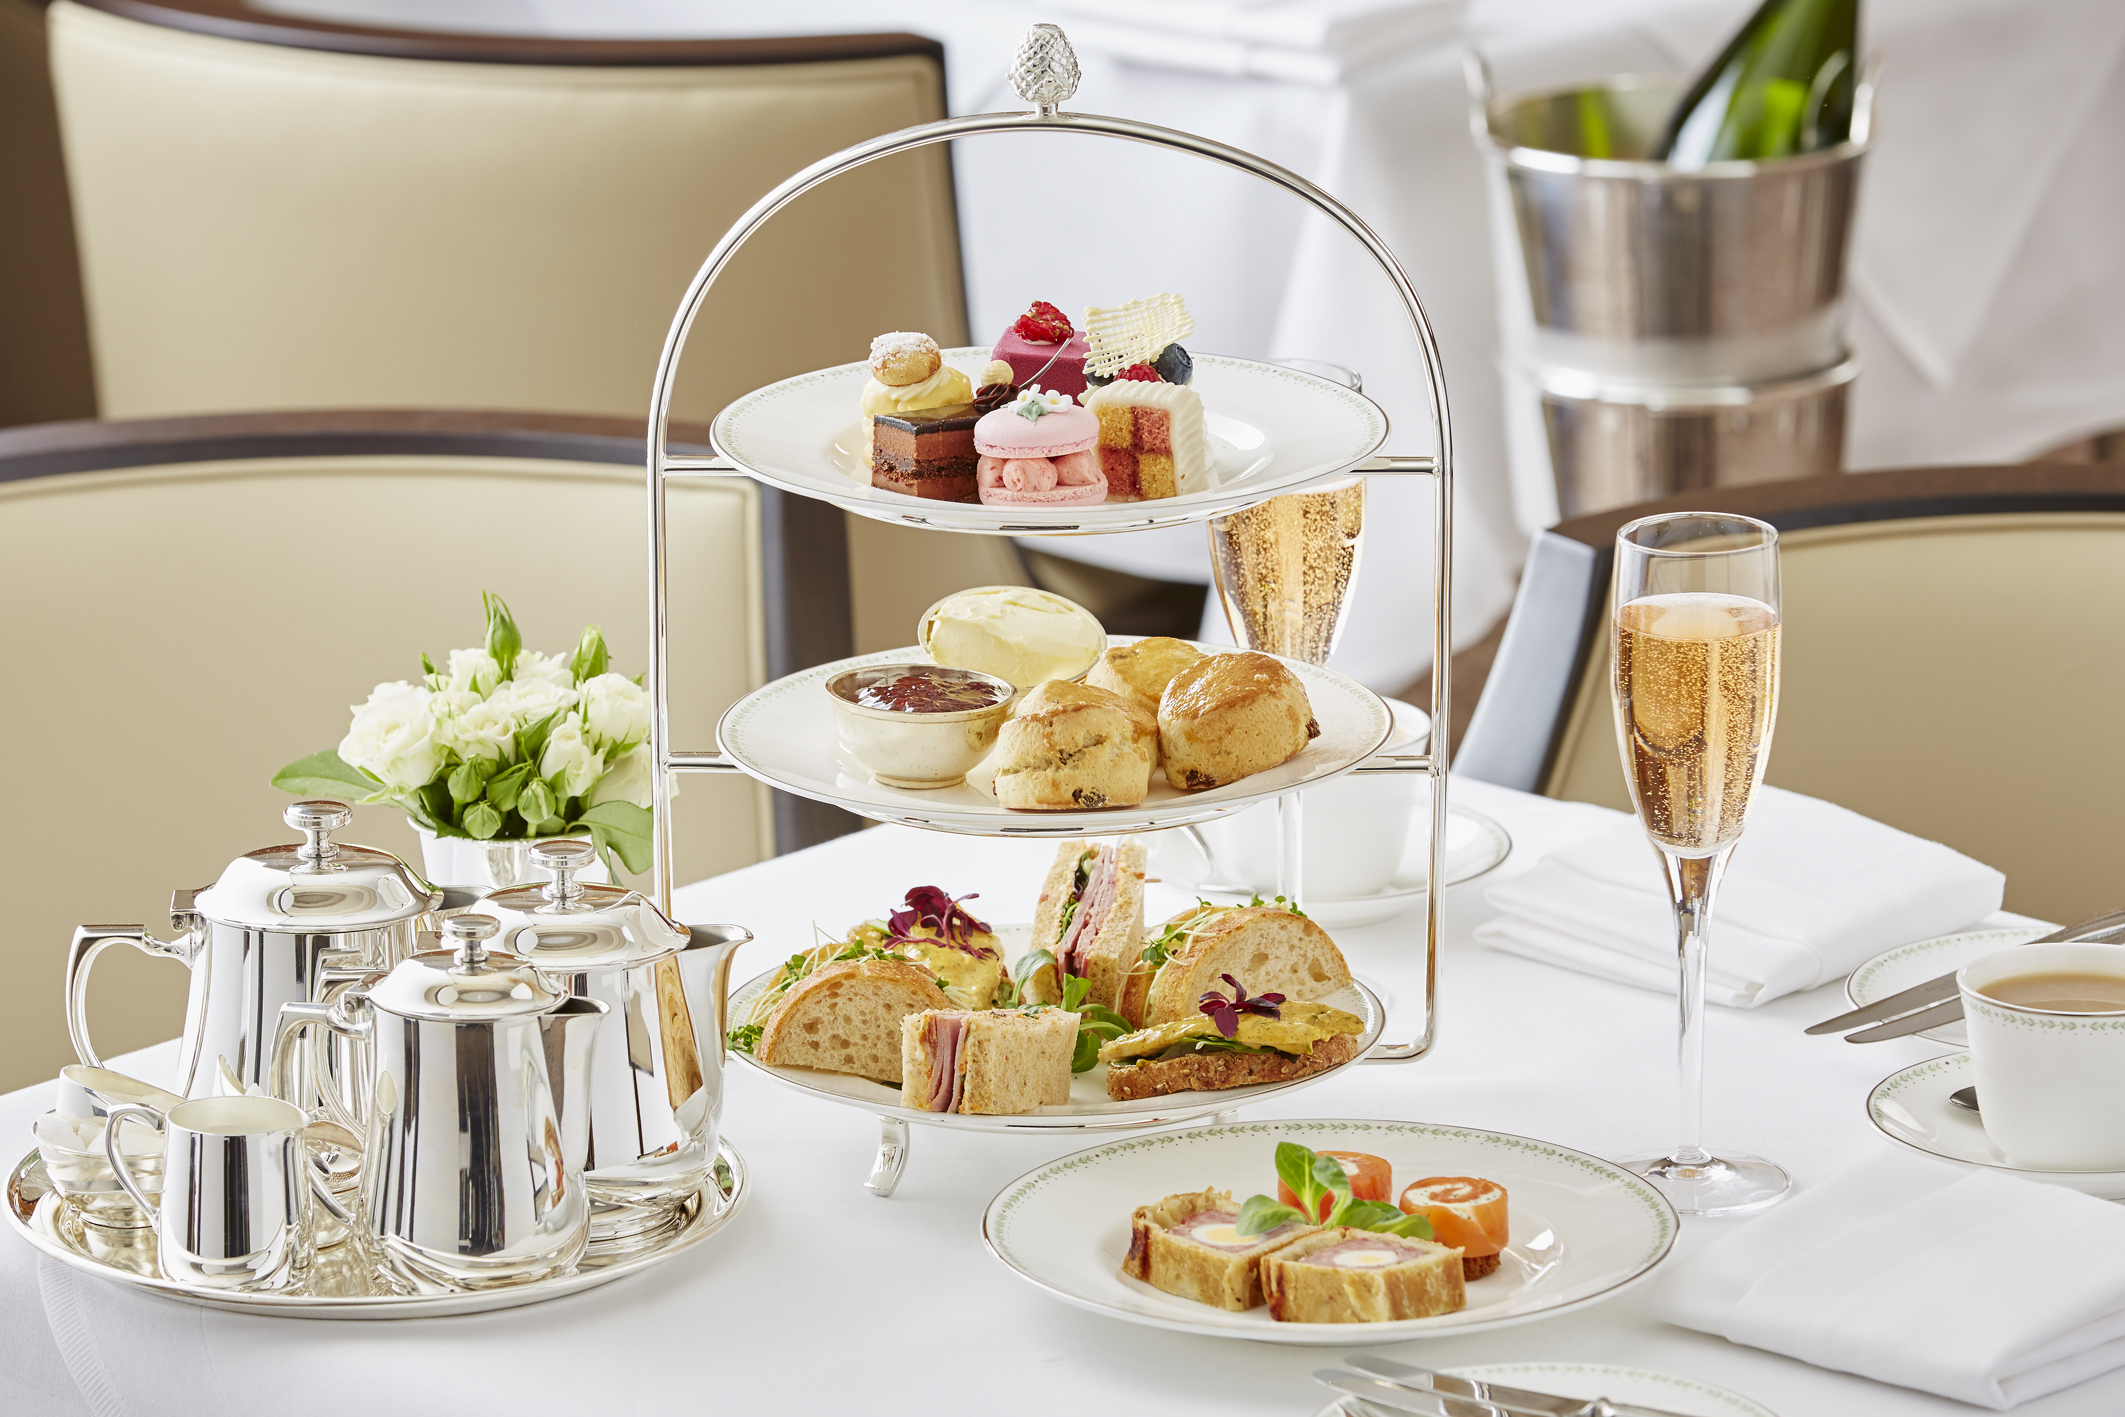 afternoon tea The elegance of enjoying small bites in an elegant solarium with a warm cup of tea simply can't be beat i adore afternoon tea, and am delighted to share the introduction of afternoon tea at solarium gardens at disney's beach club resort.